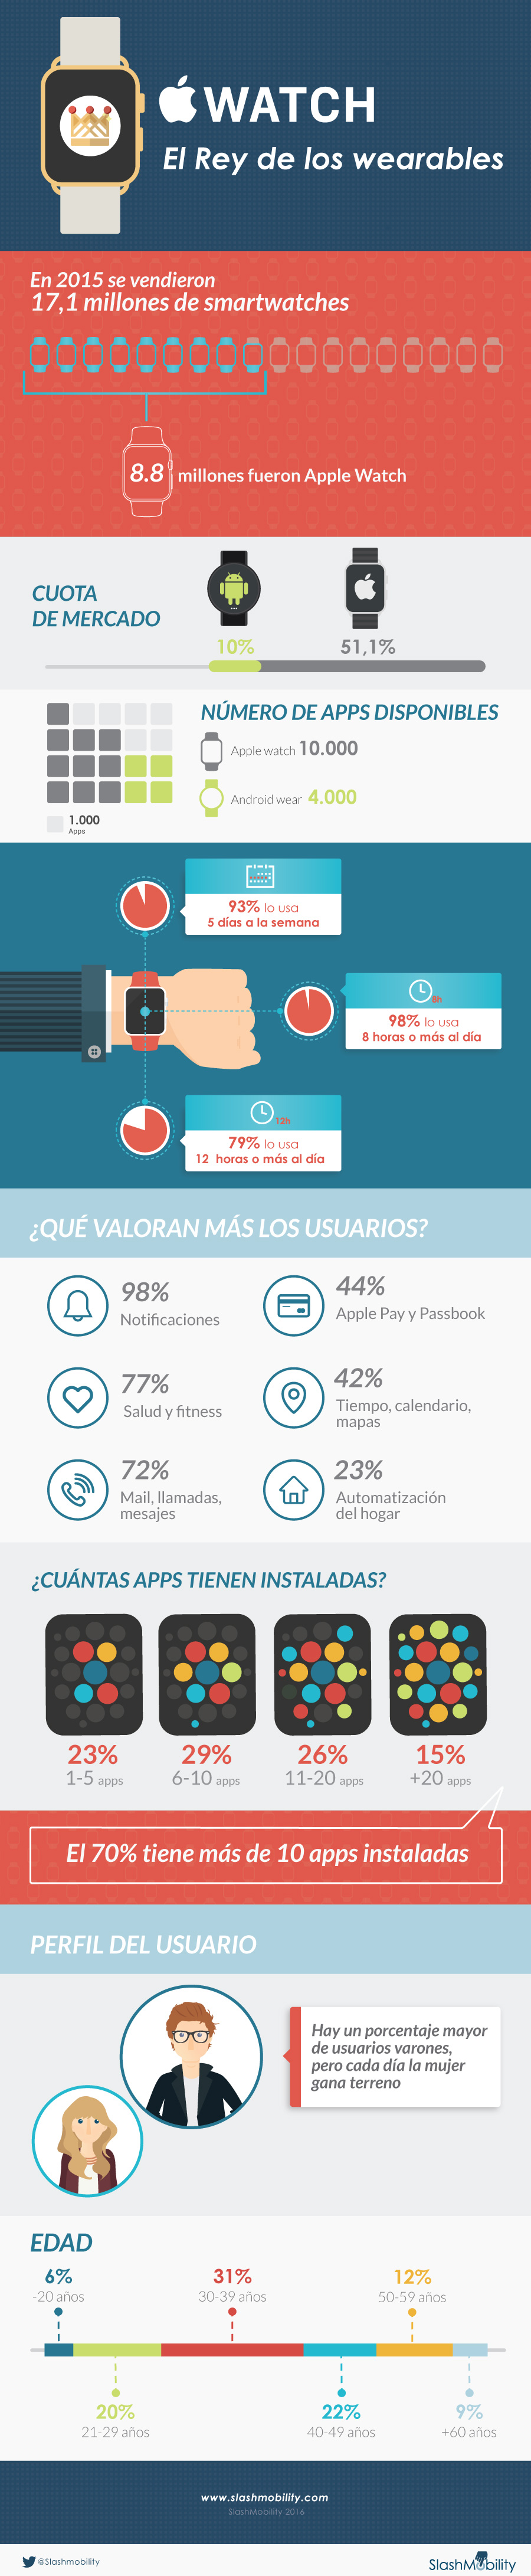 infografia apple watch